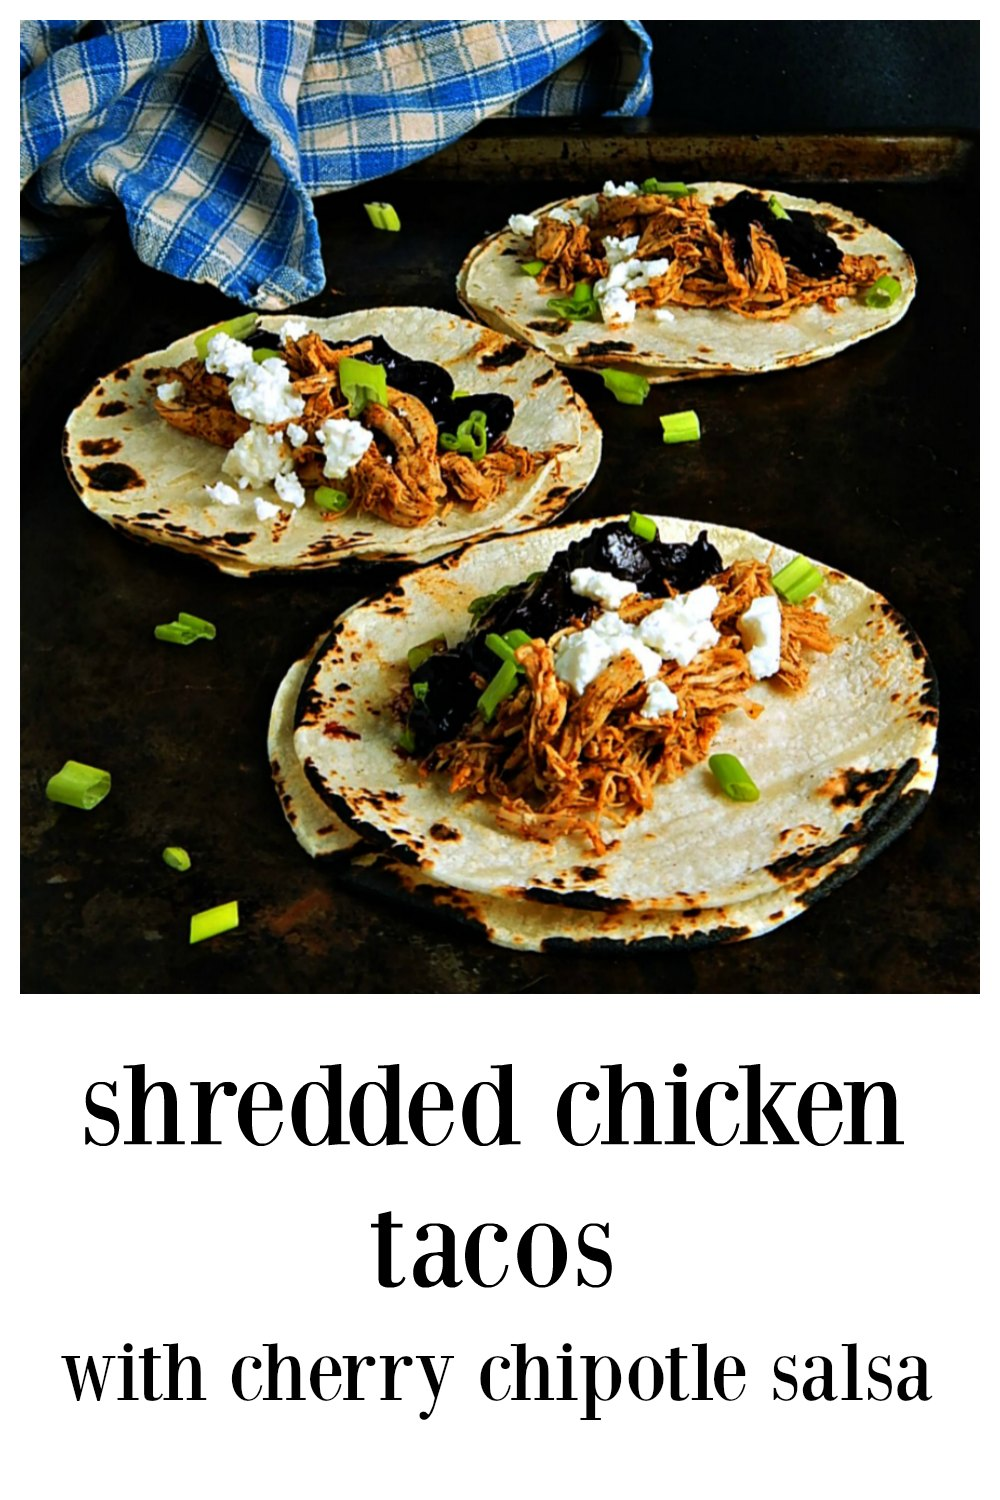 Don't get me wrong, the chicken in Chicken Tacos with Cherry Chipotle Salsa is delish but it's that sweet/tart cherry salsa that steals the show! Under 30 minutes; use rotisserie chicken or poach your own. #CherrySalsa #ChipotleCherrySalsa #ChickenTacos #ShreddedMexicanChicken